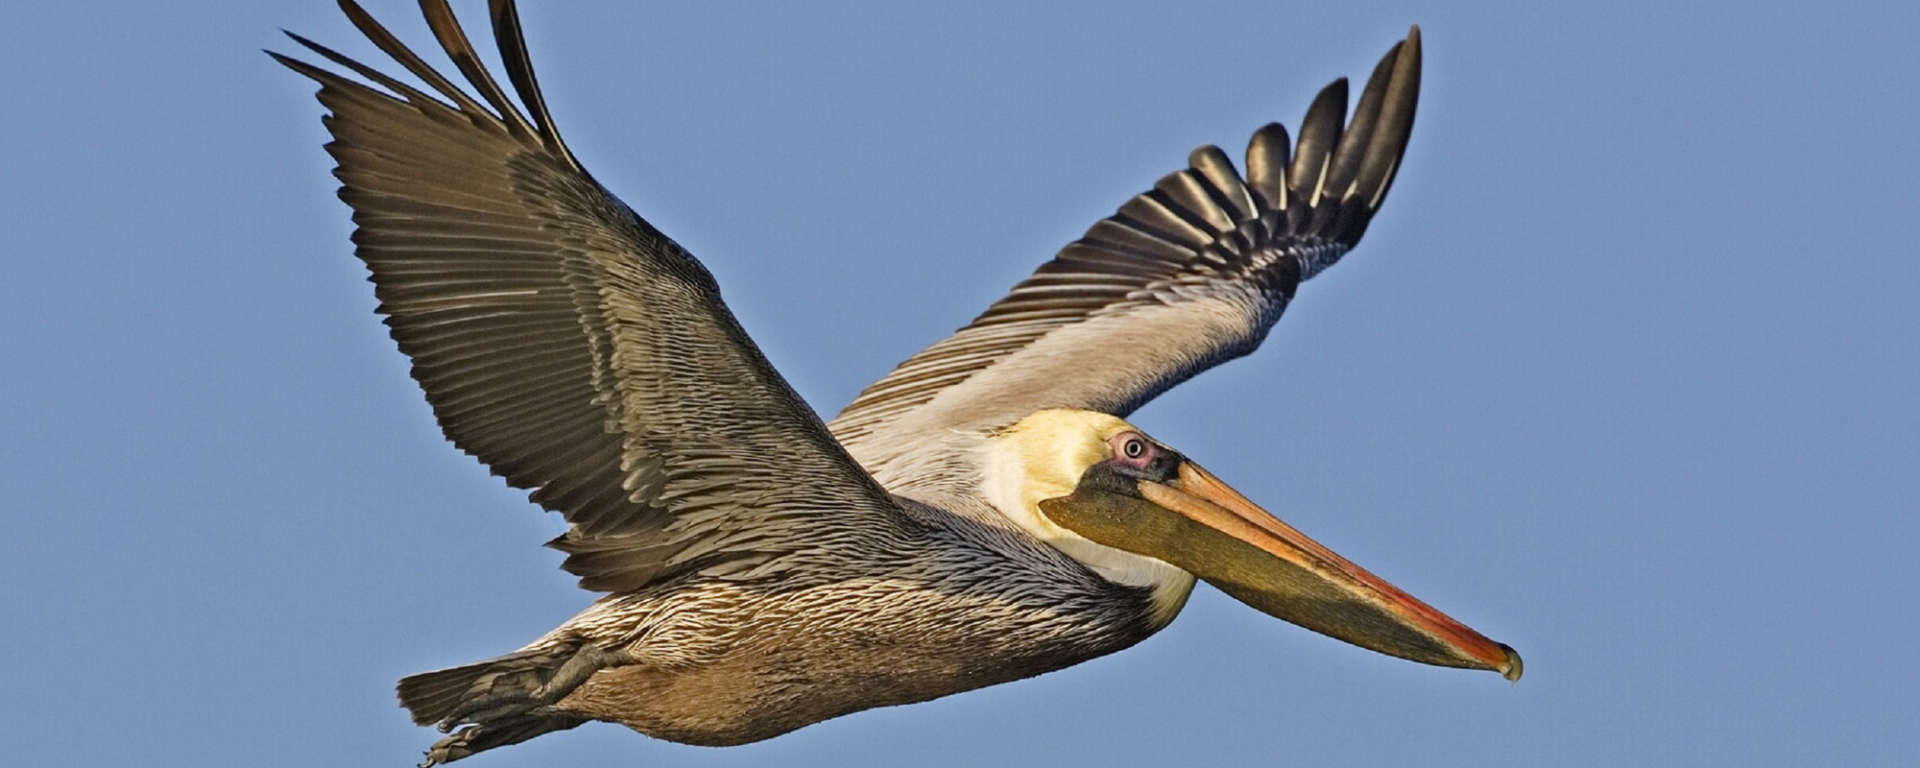 brown pelican bird